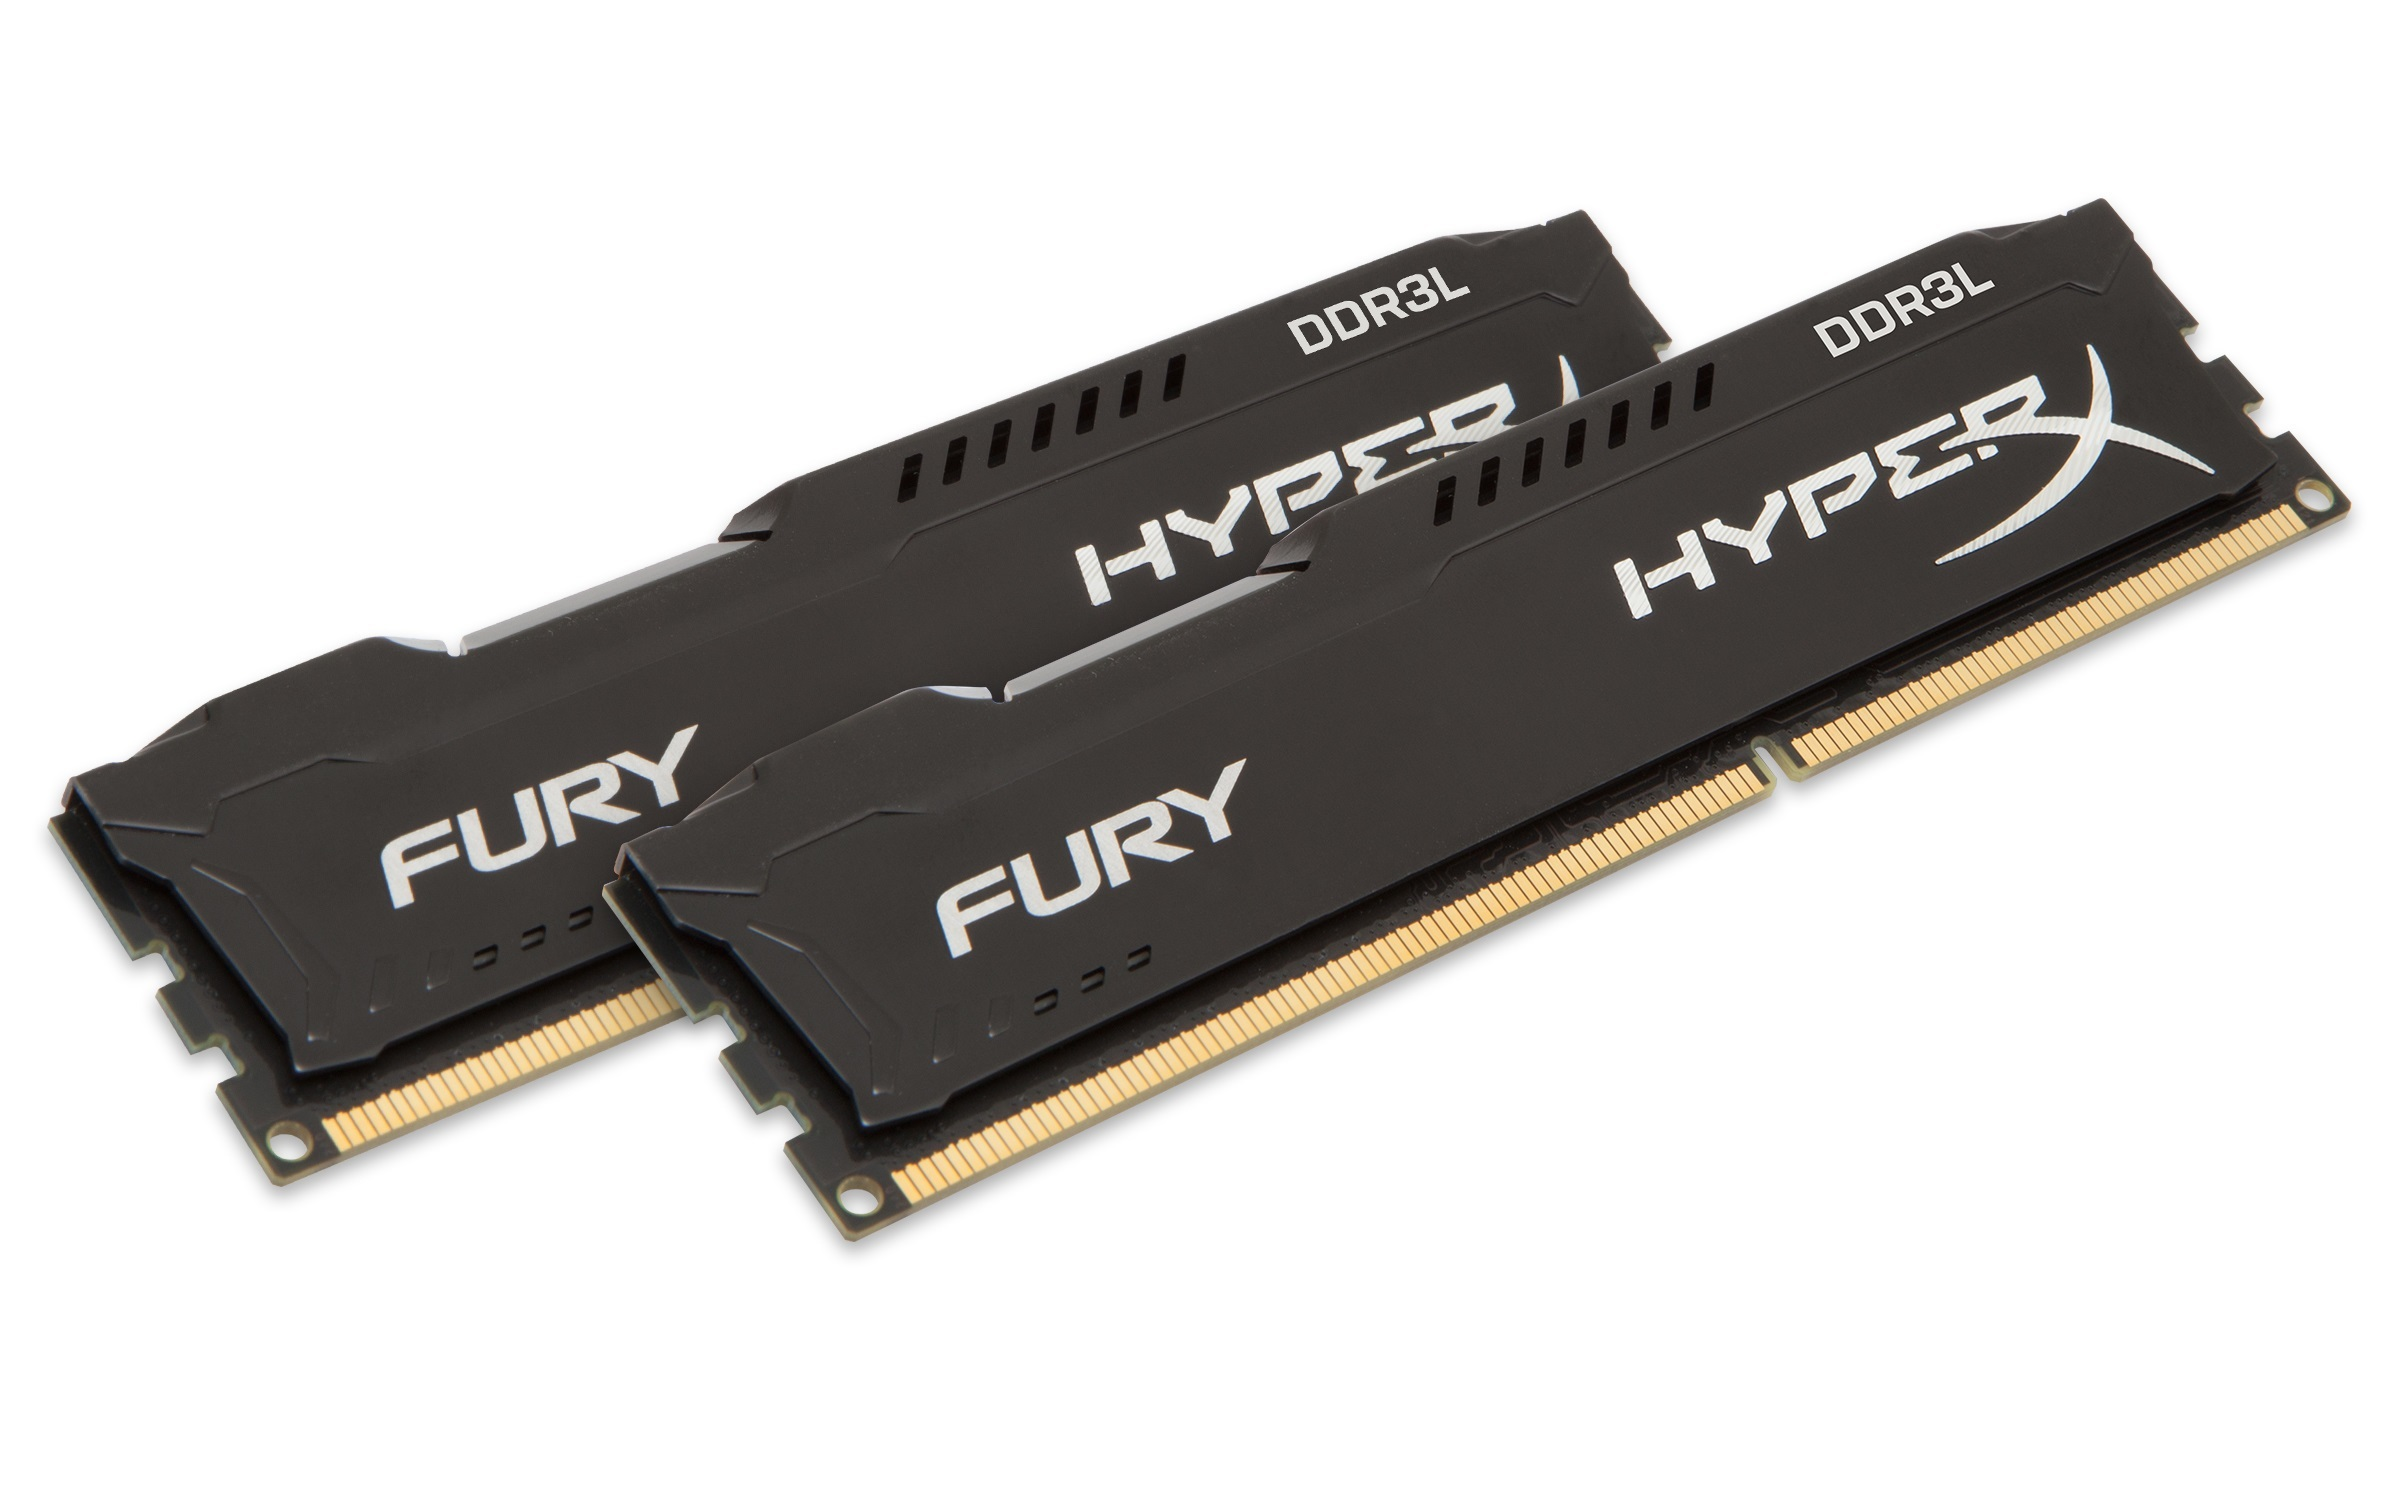 16GB DDR3L-1866MHz Kingston HyperX Fury Bl., 2x8GB